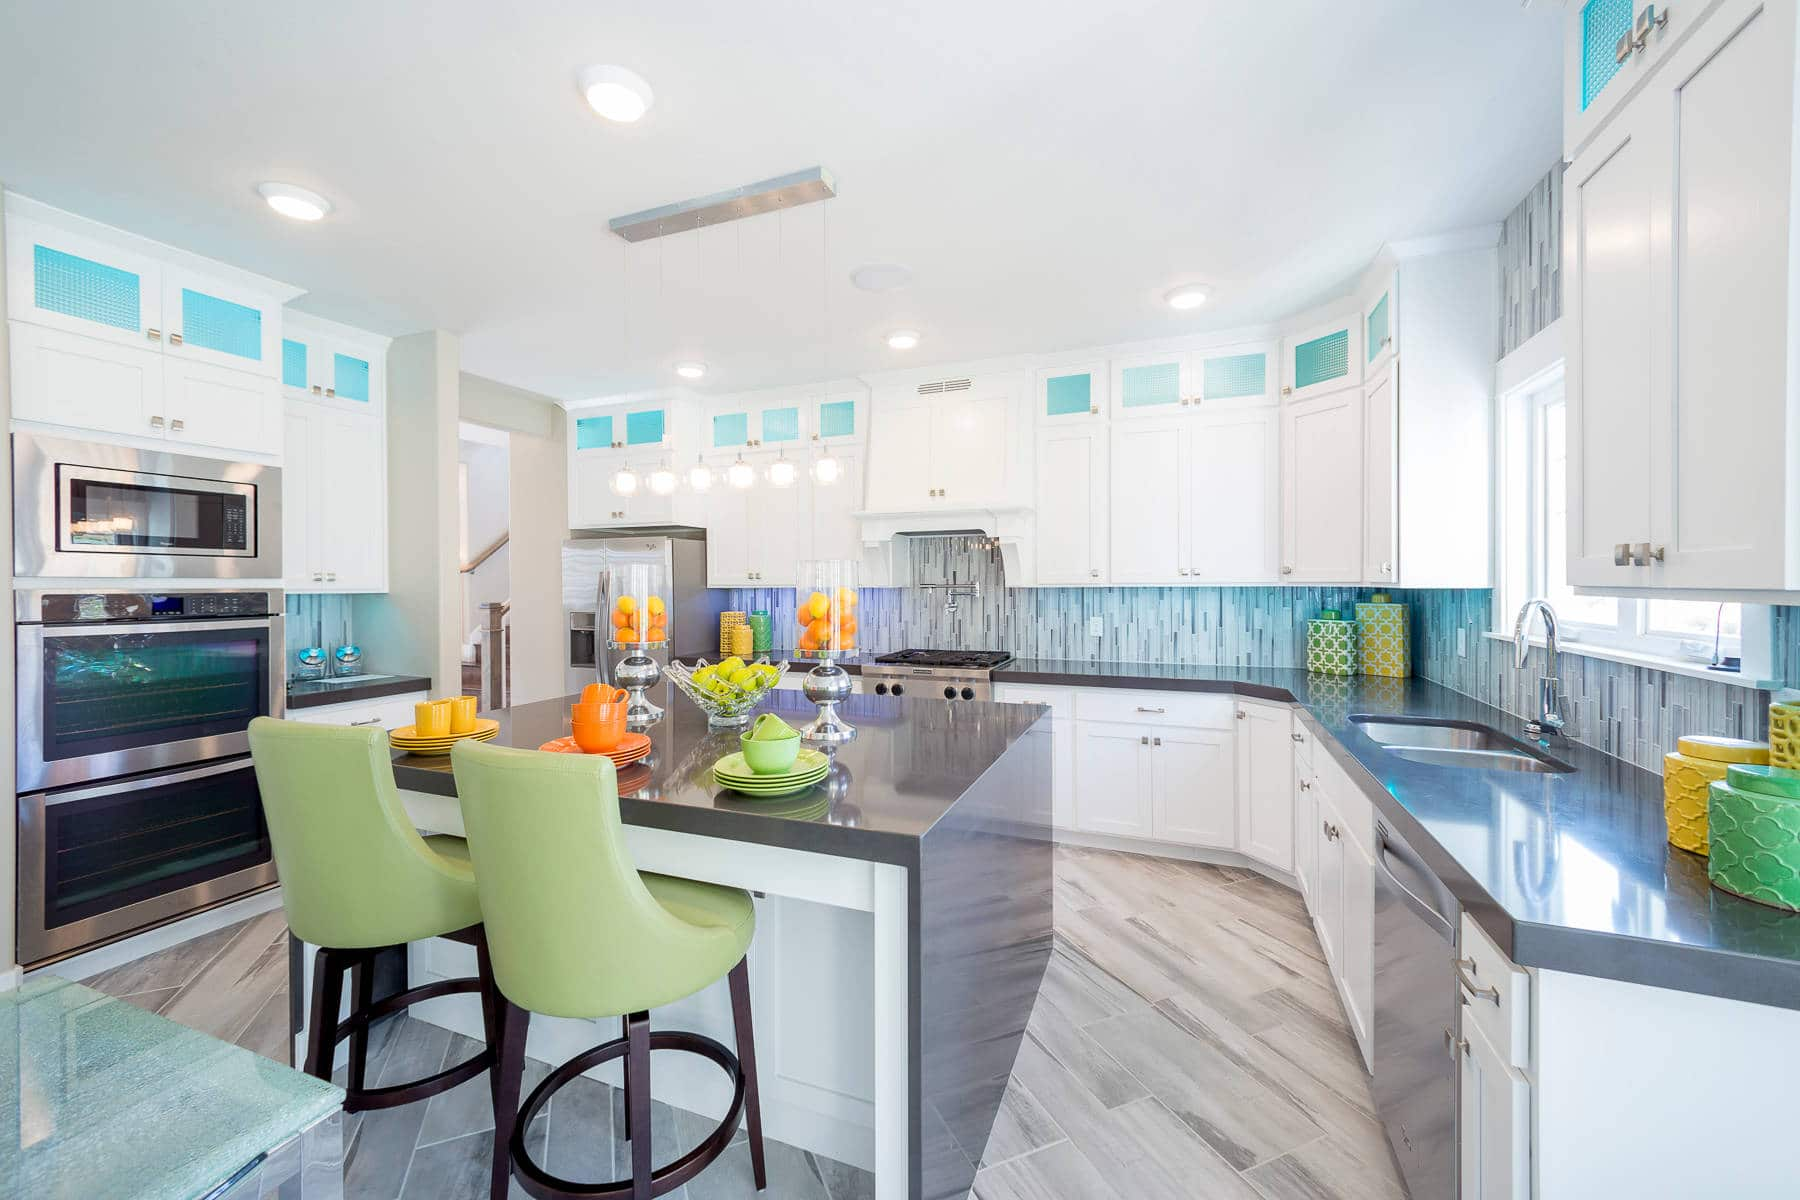 white-shaker-kitchen-cabinets-cool-color